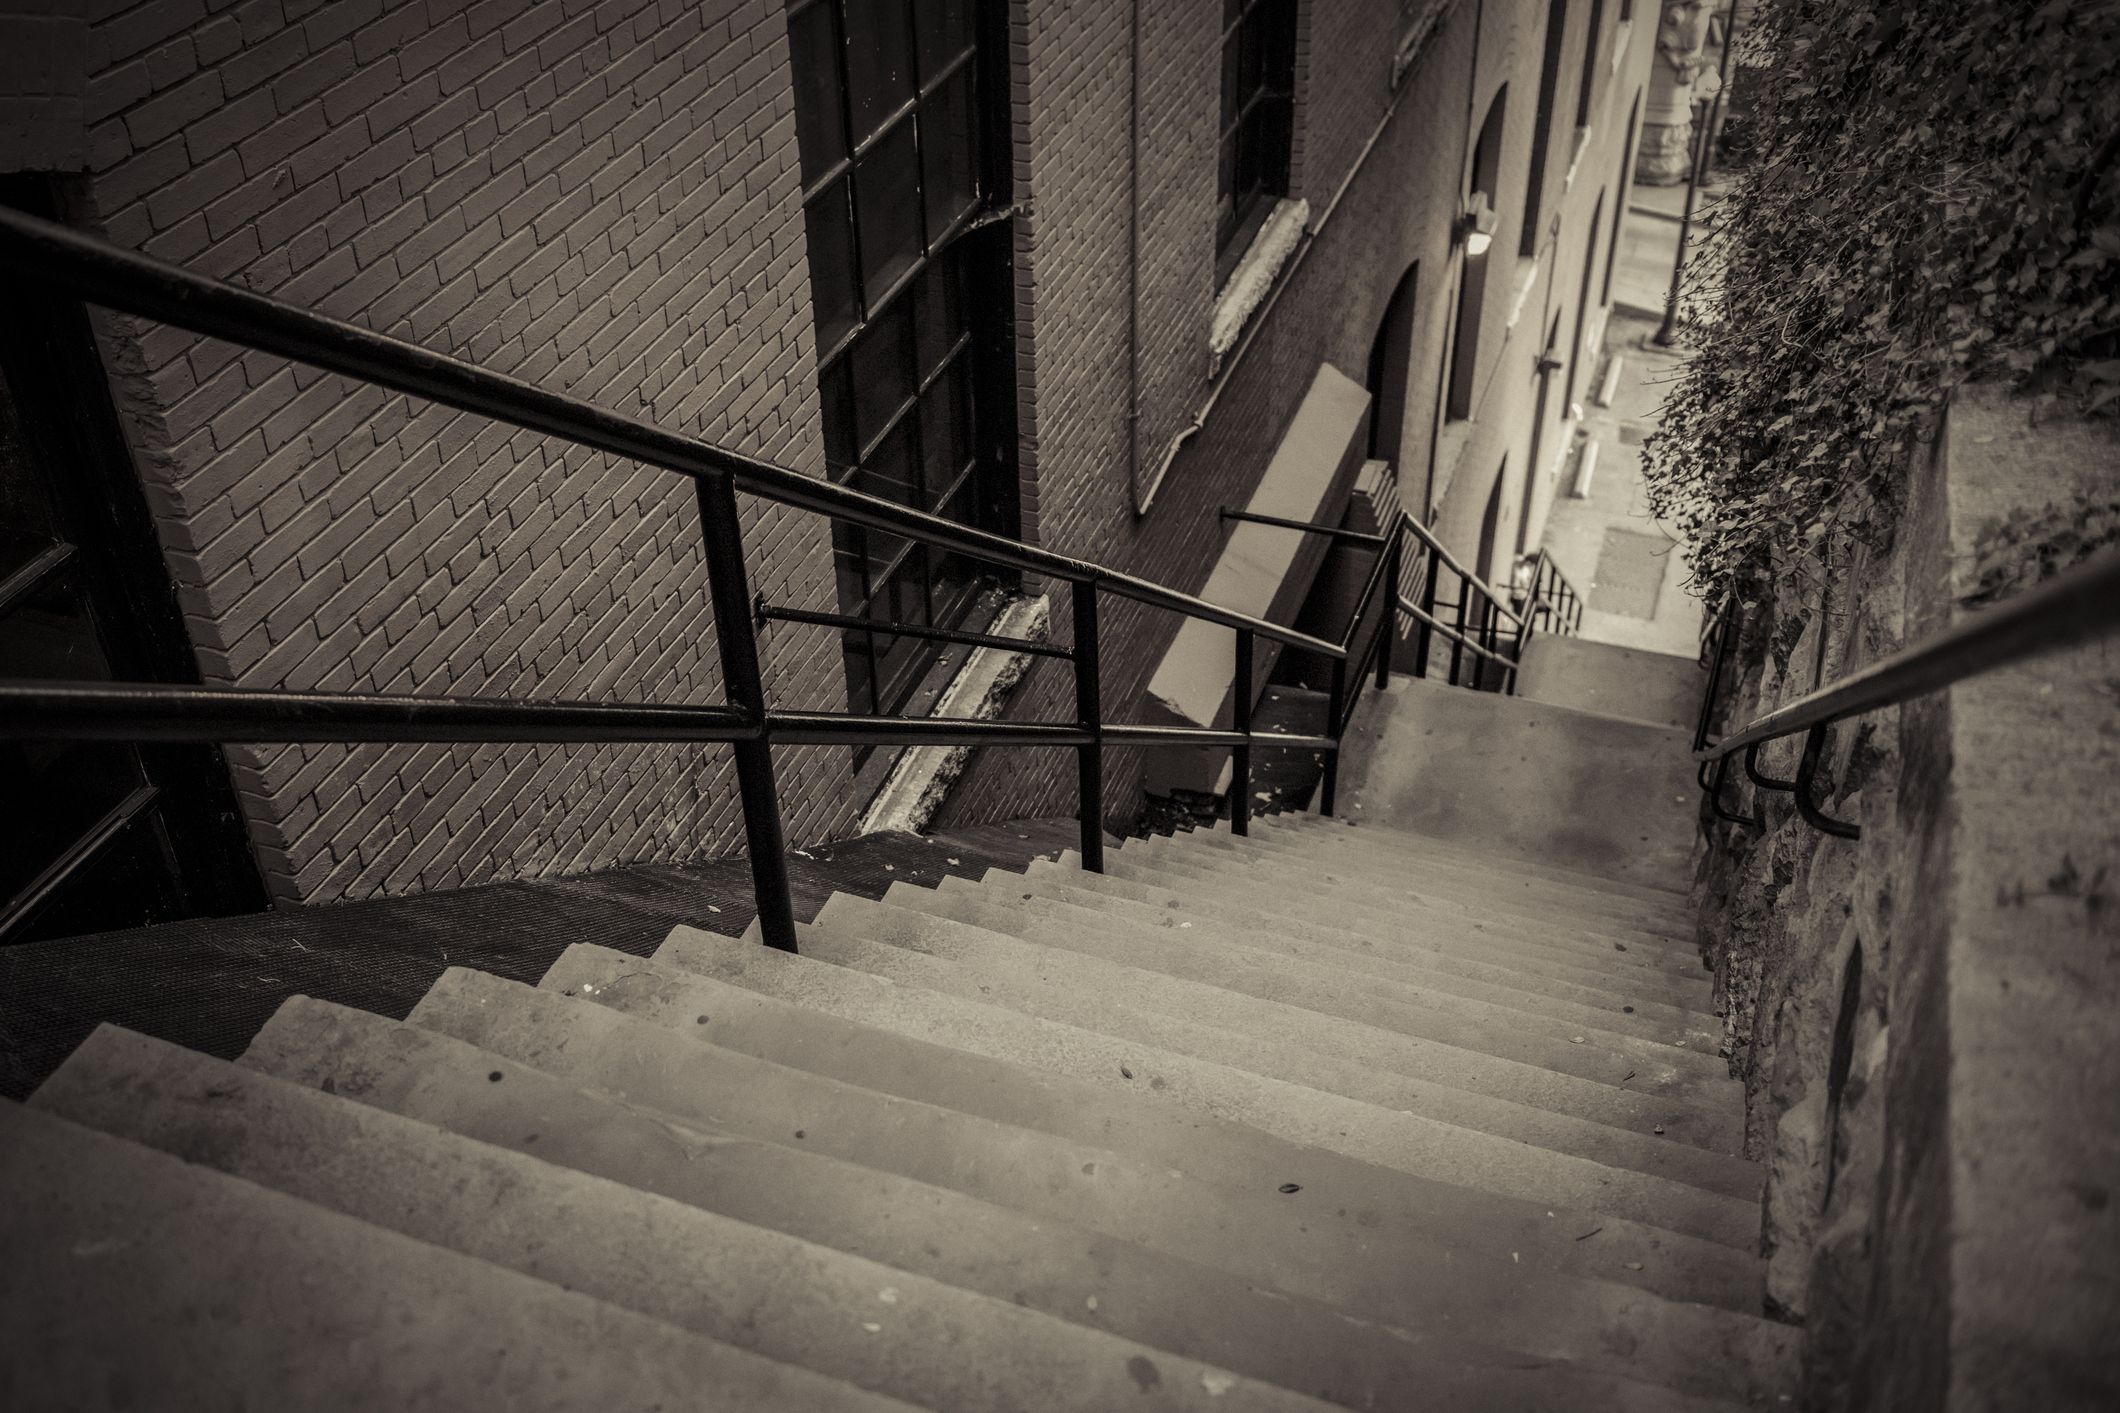 Exorcist Steps In Georgetown